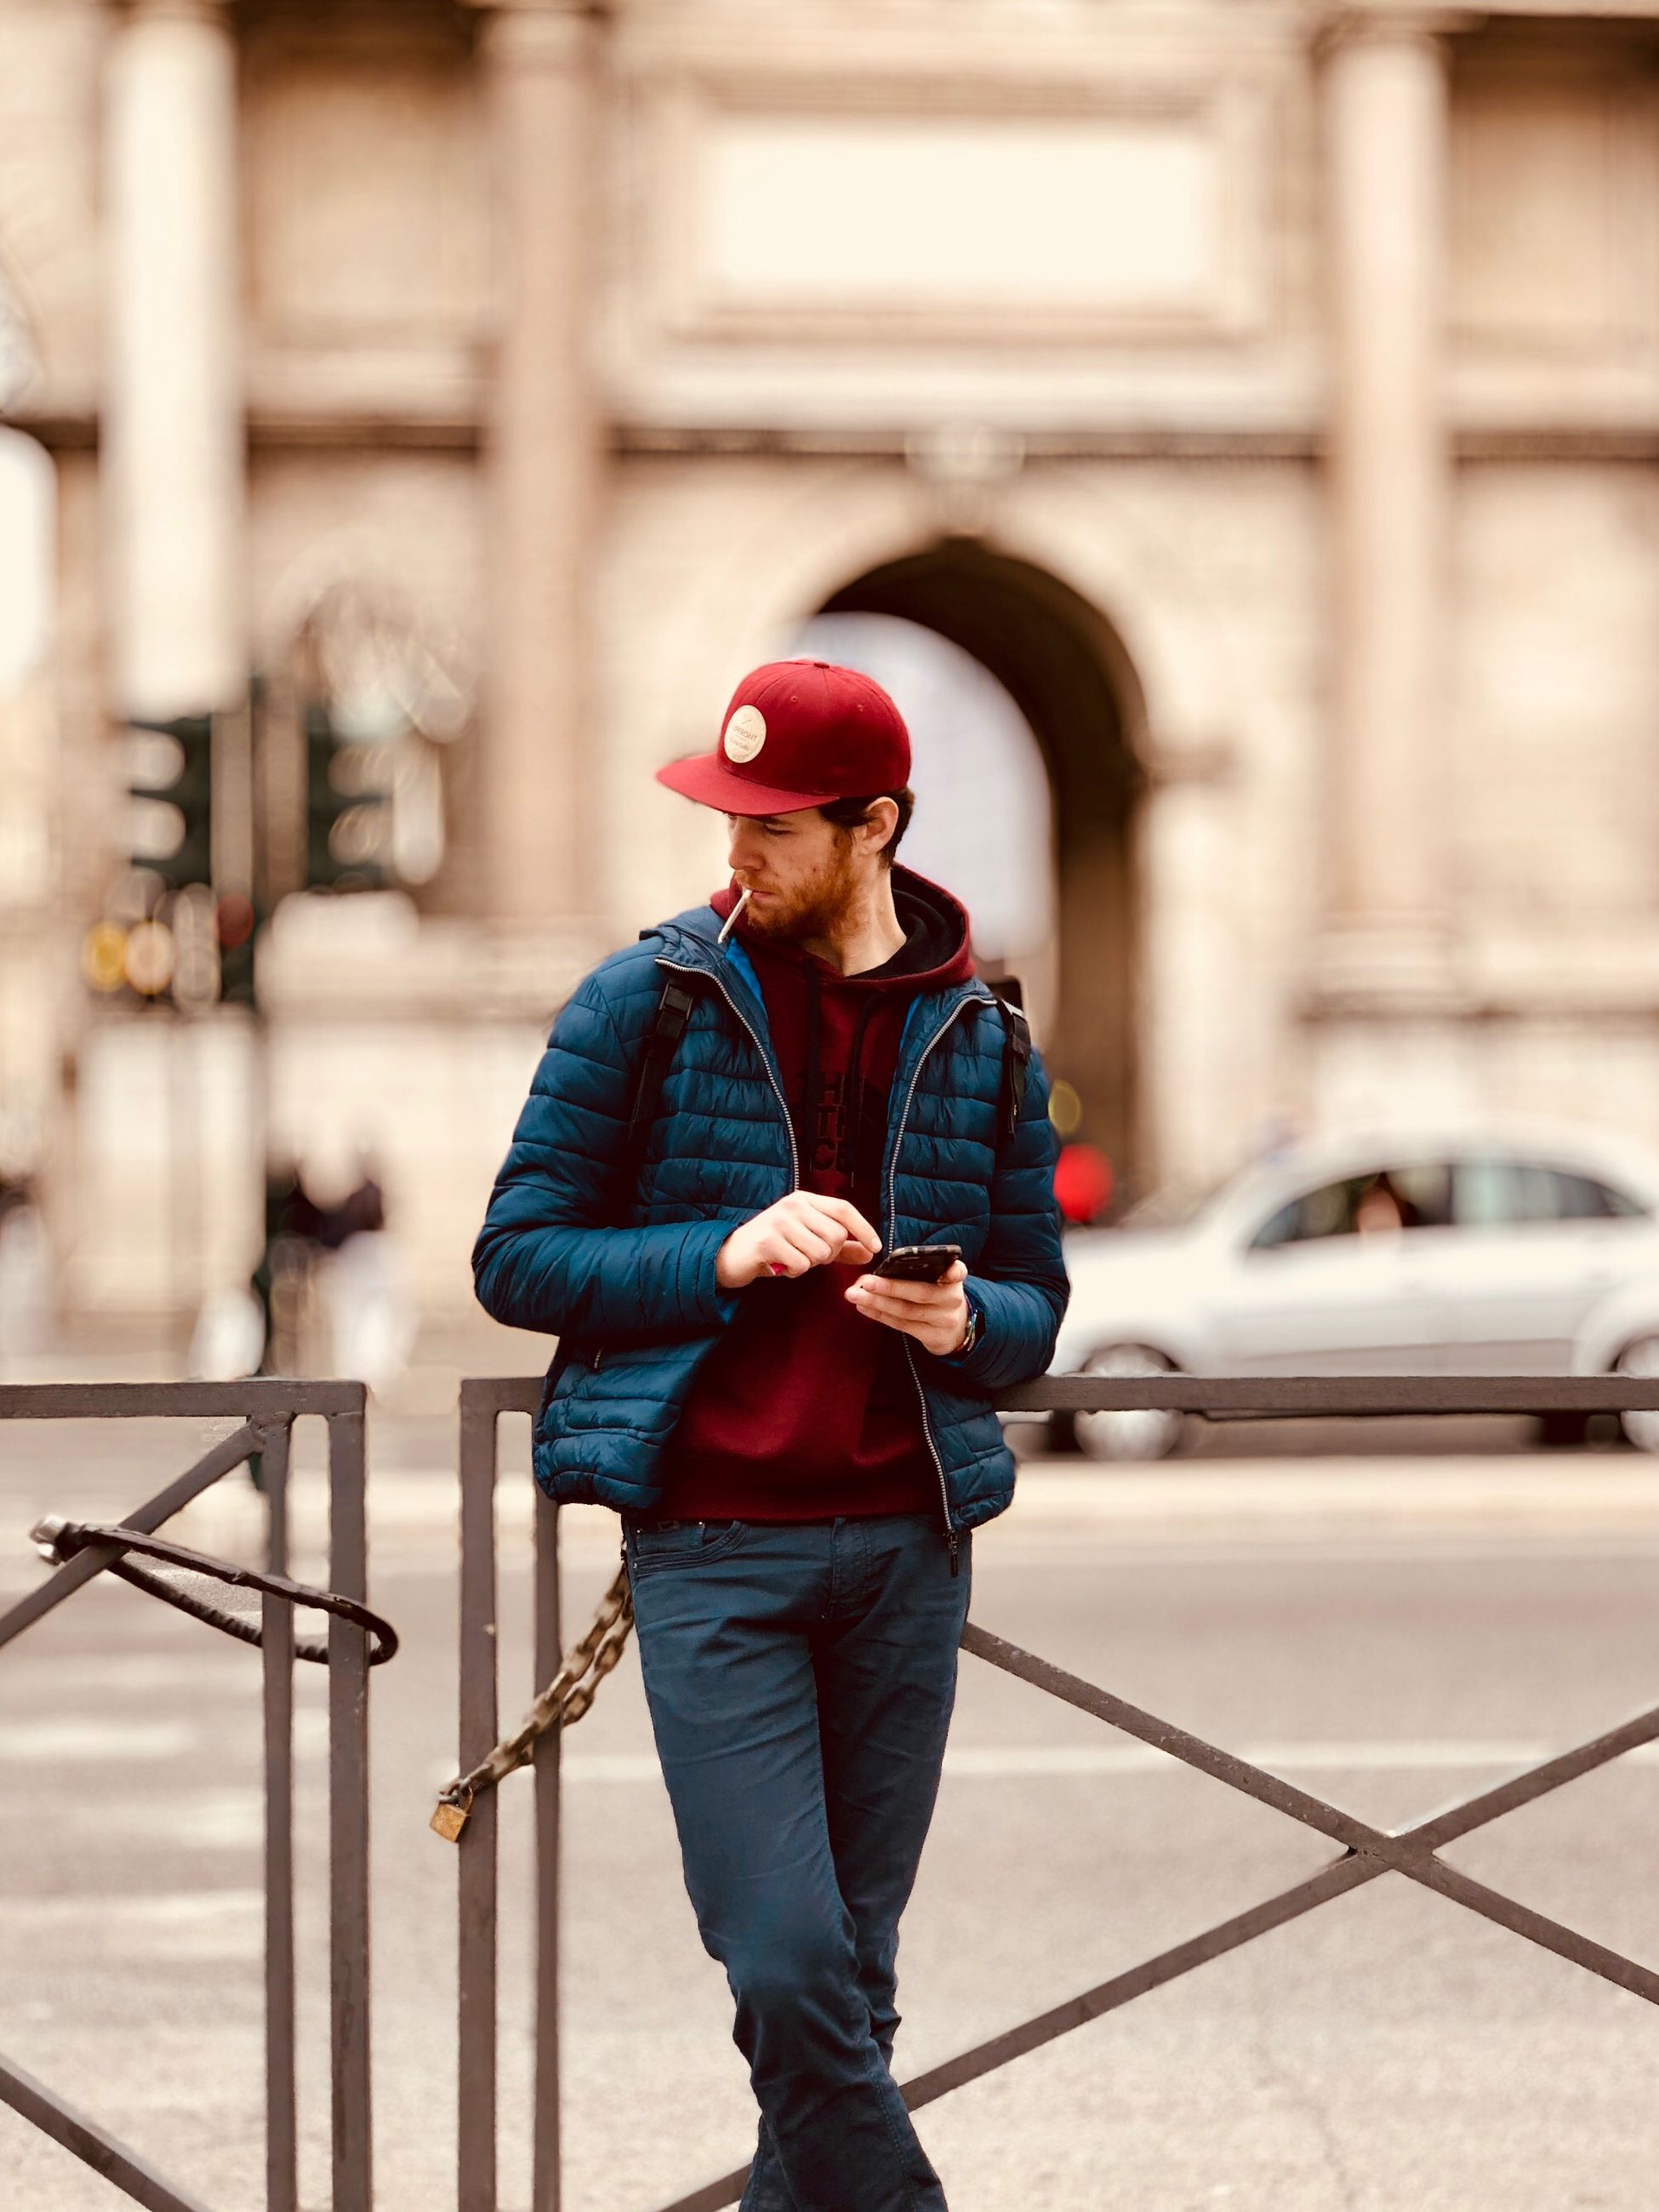 standing, one person, architecture, real people, city, built structure, lifestyles, young adult, building exterior, focus on foreground, transportation, connection, front view, day, clothing, mode of transportation, full length, mid adult, car, outdoors